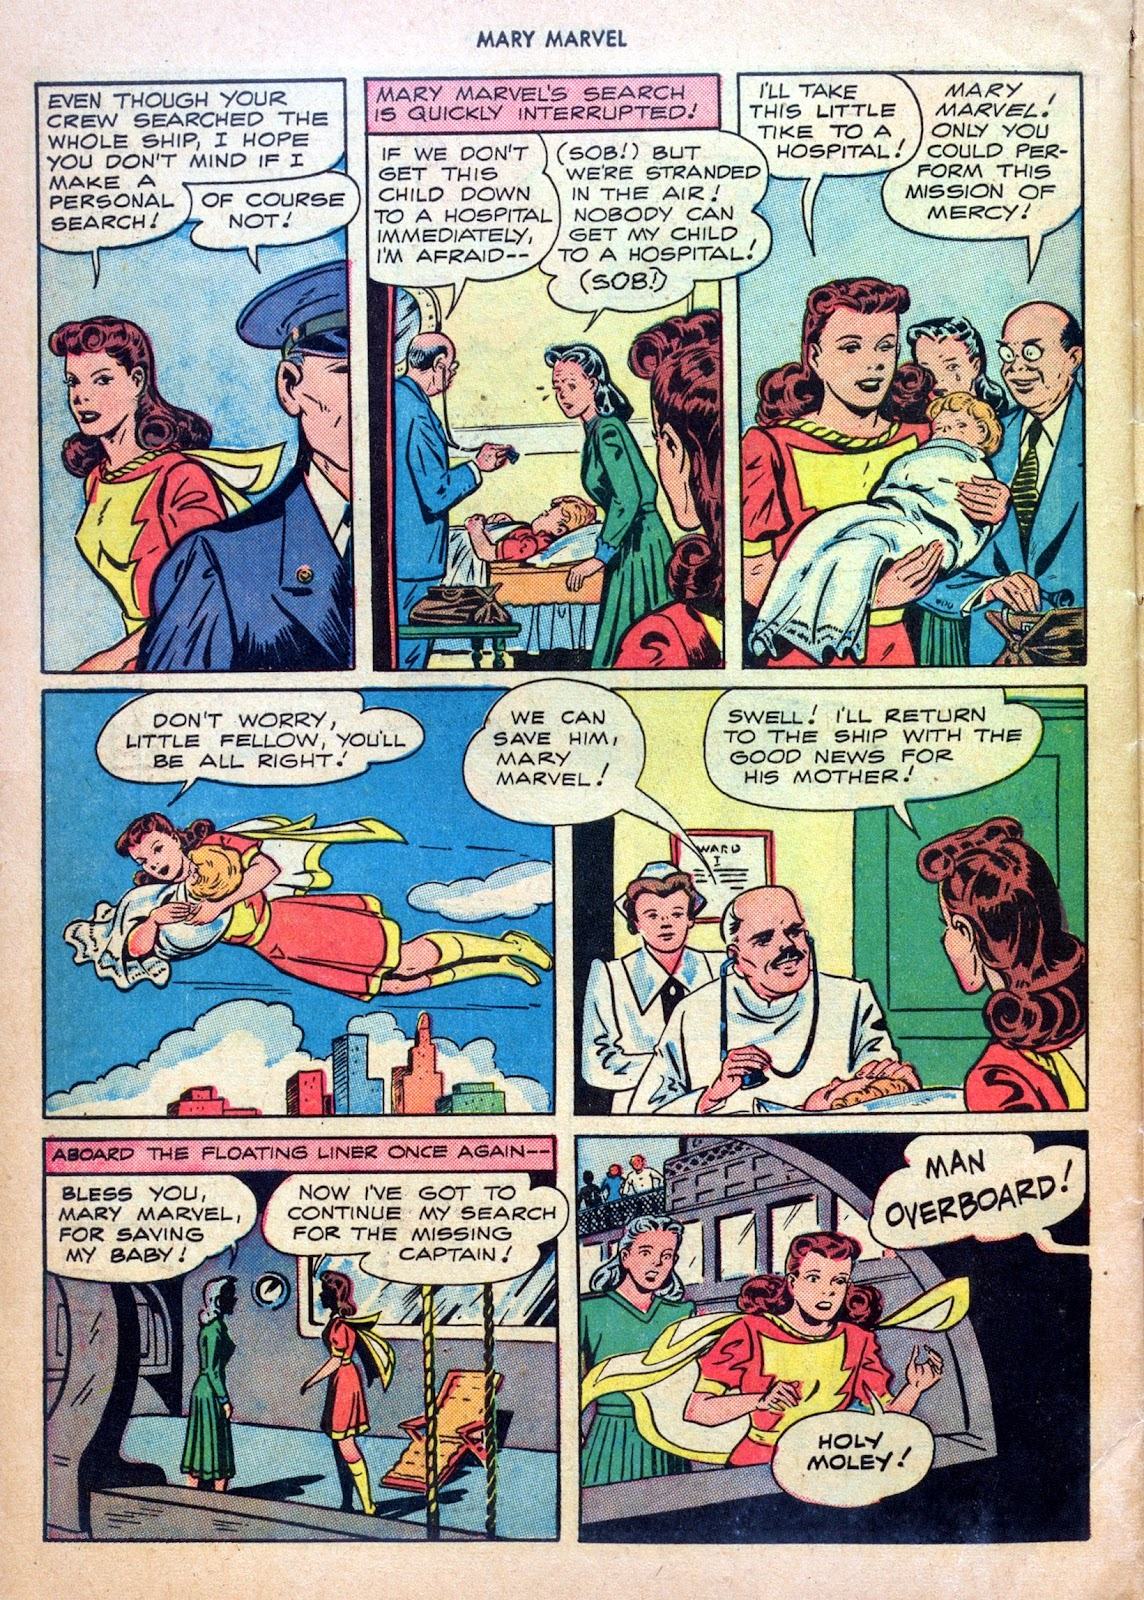 Read online Mary Marvel comic -  Issue #27 - 30